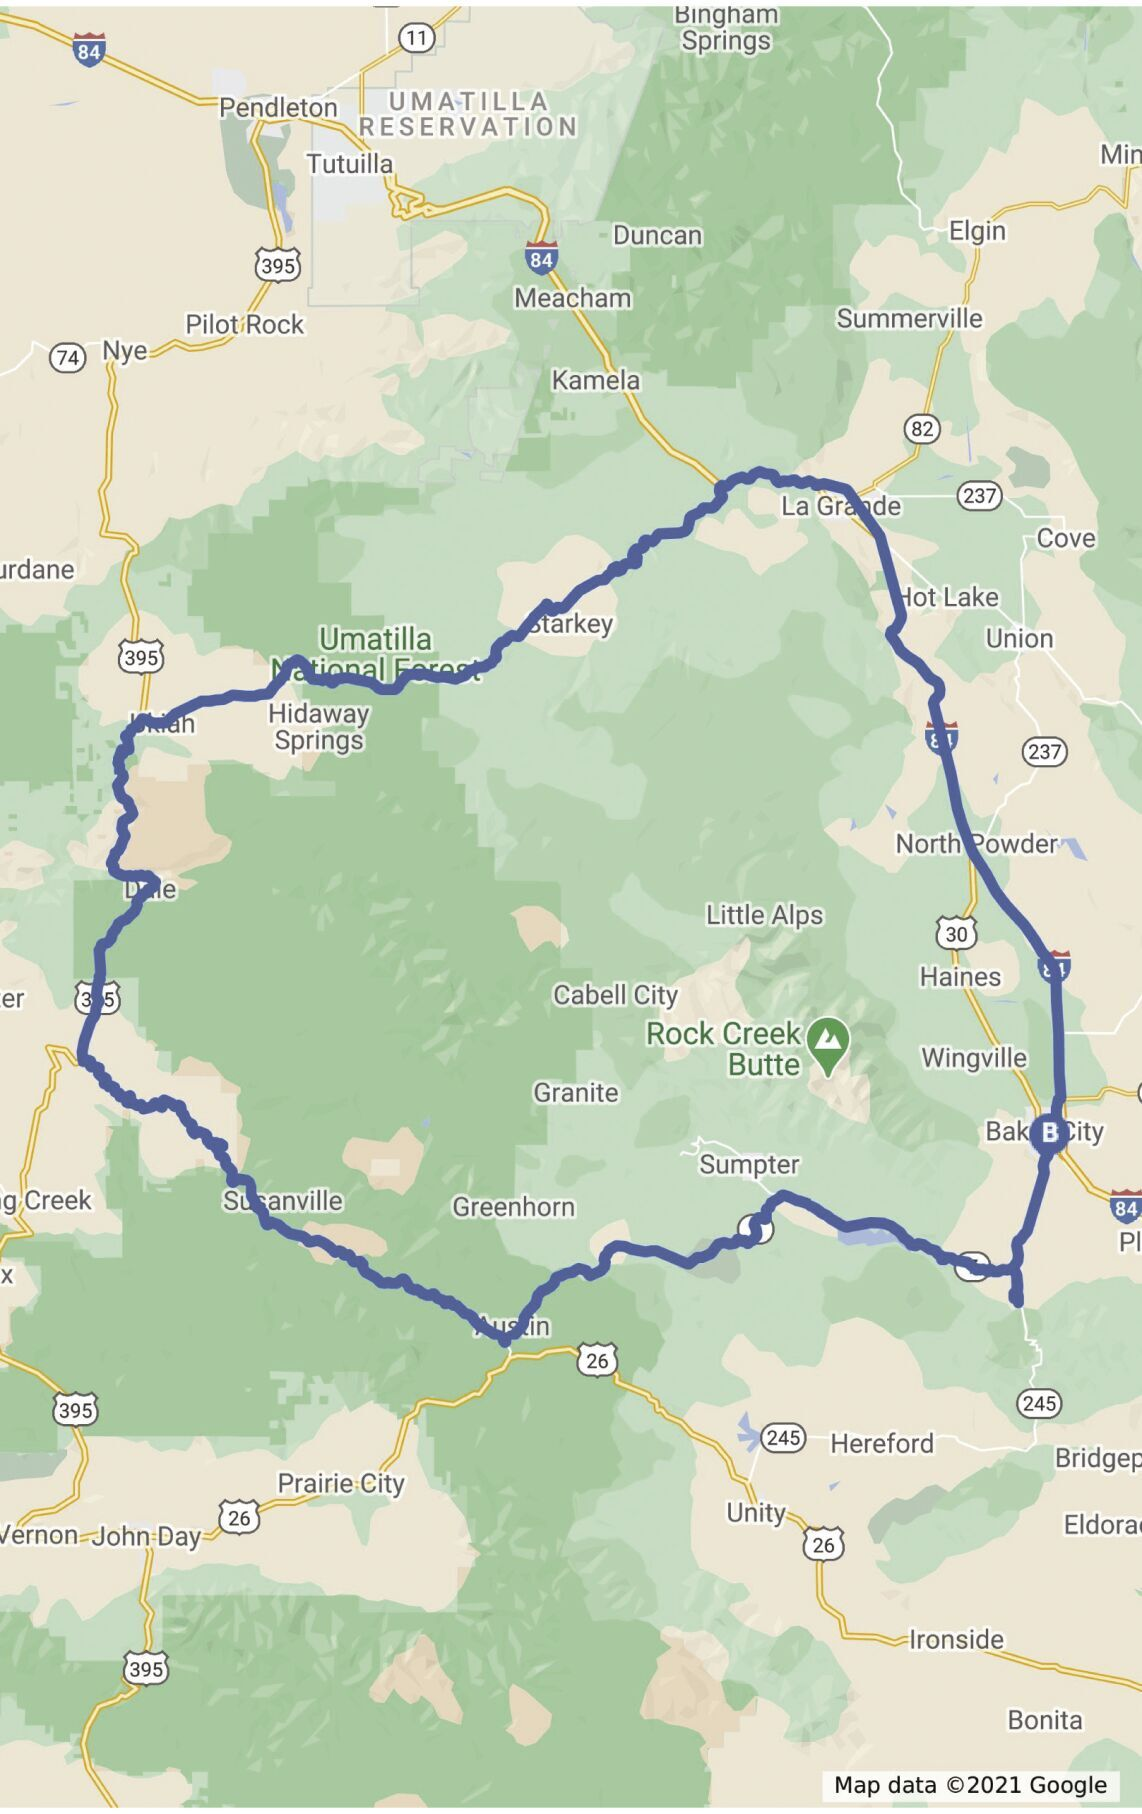 Driving tour map